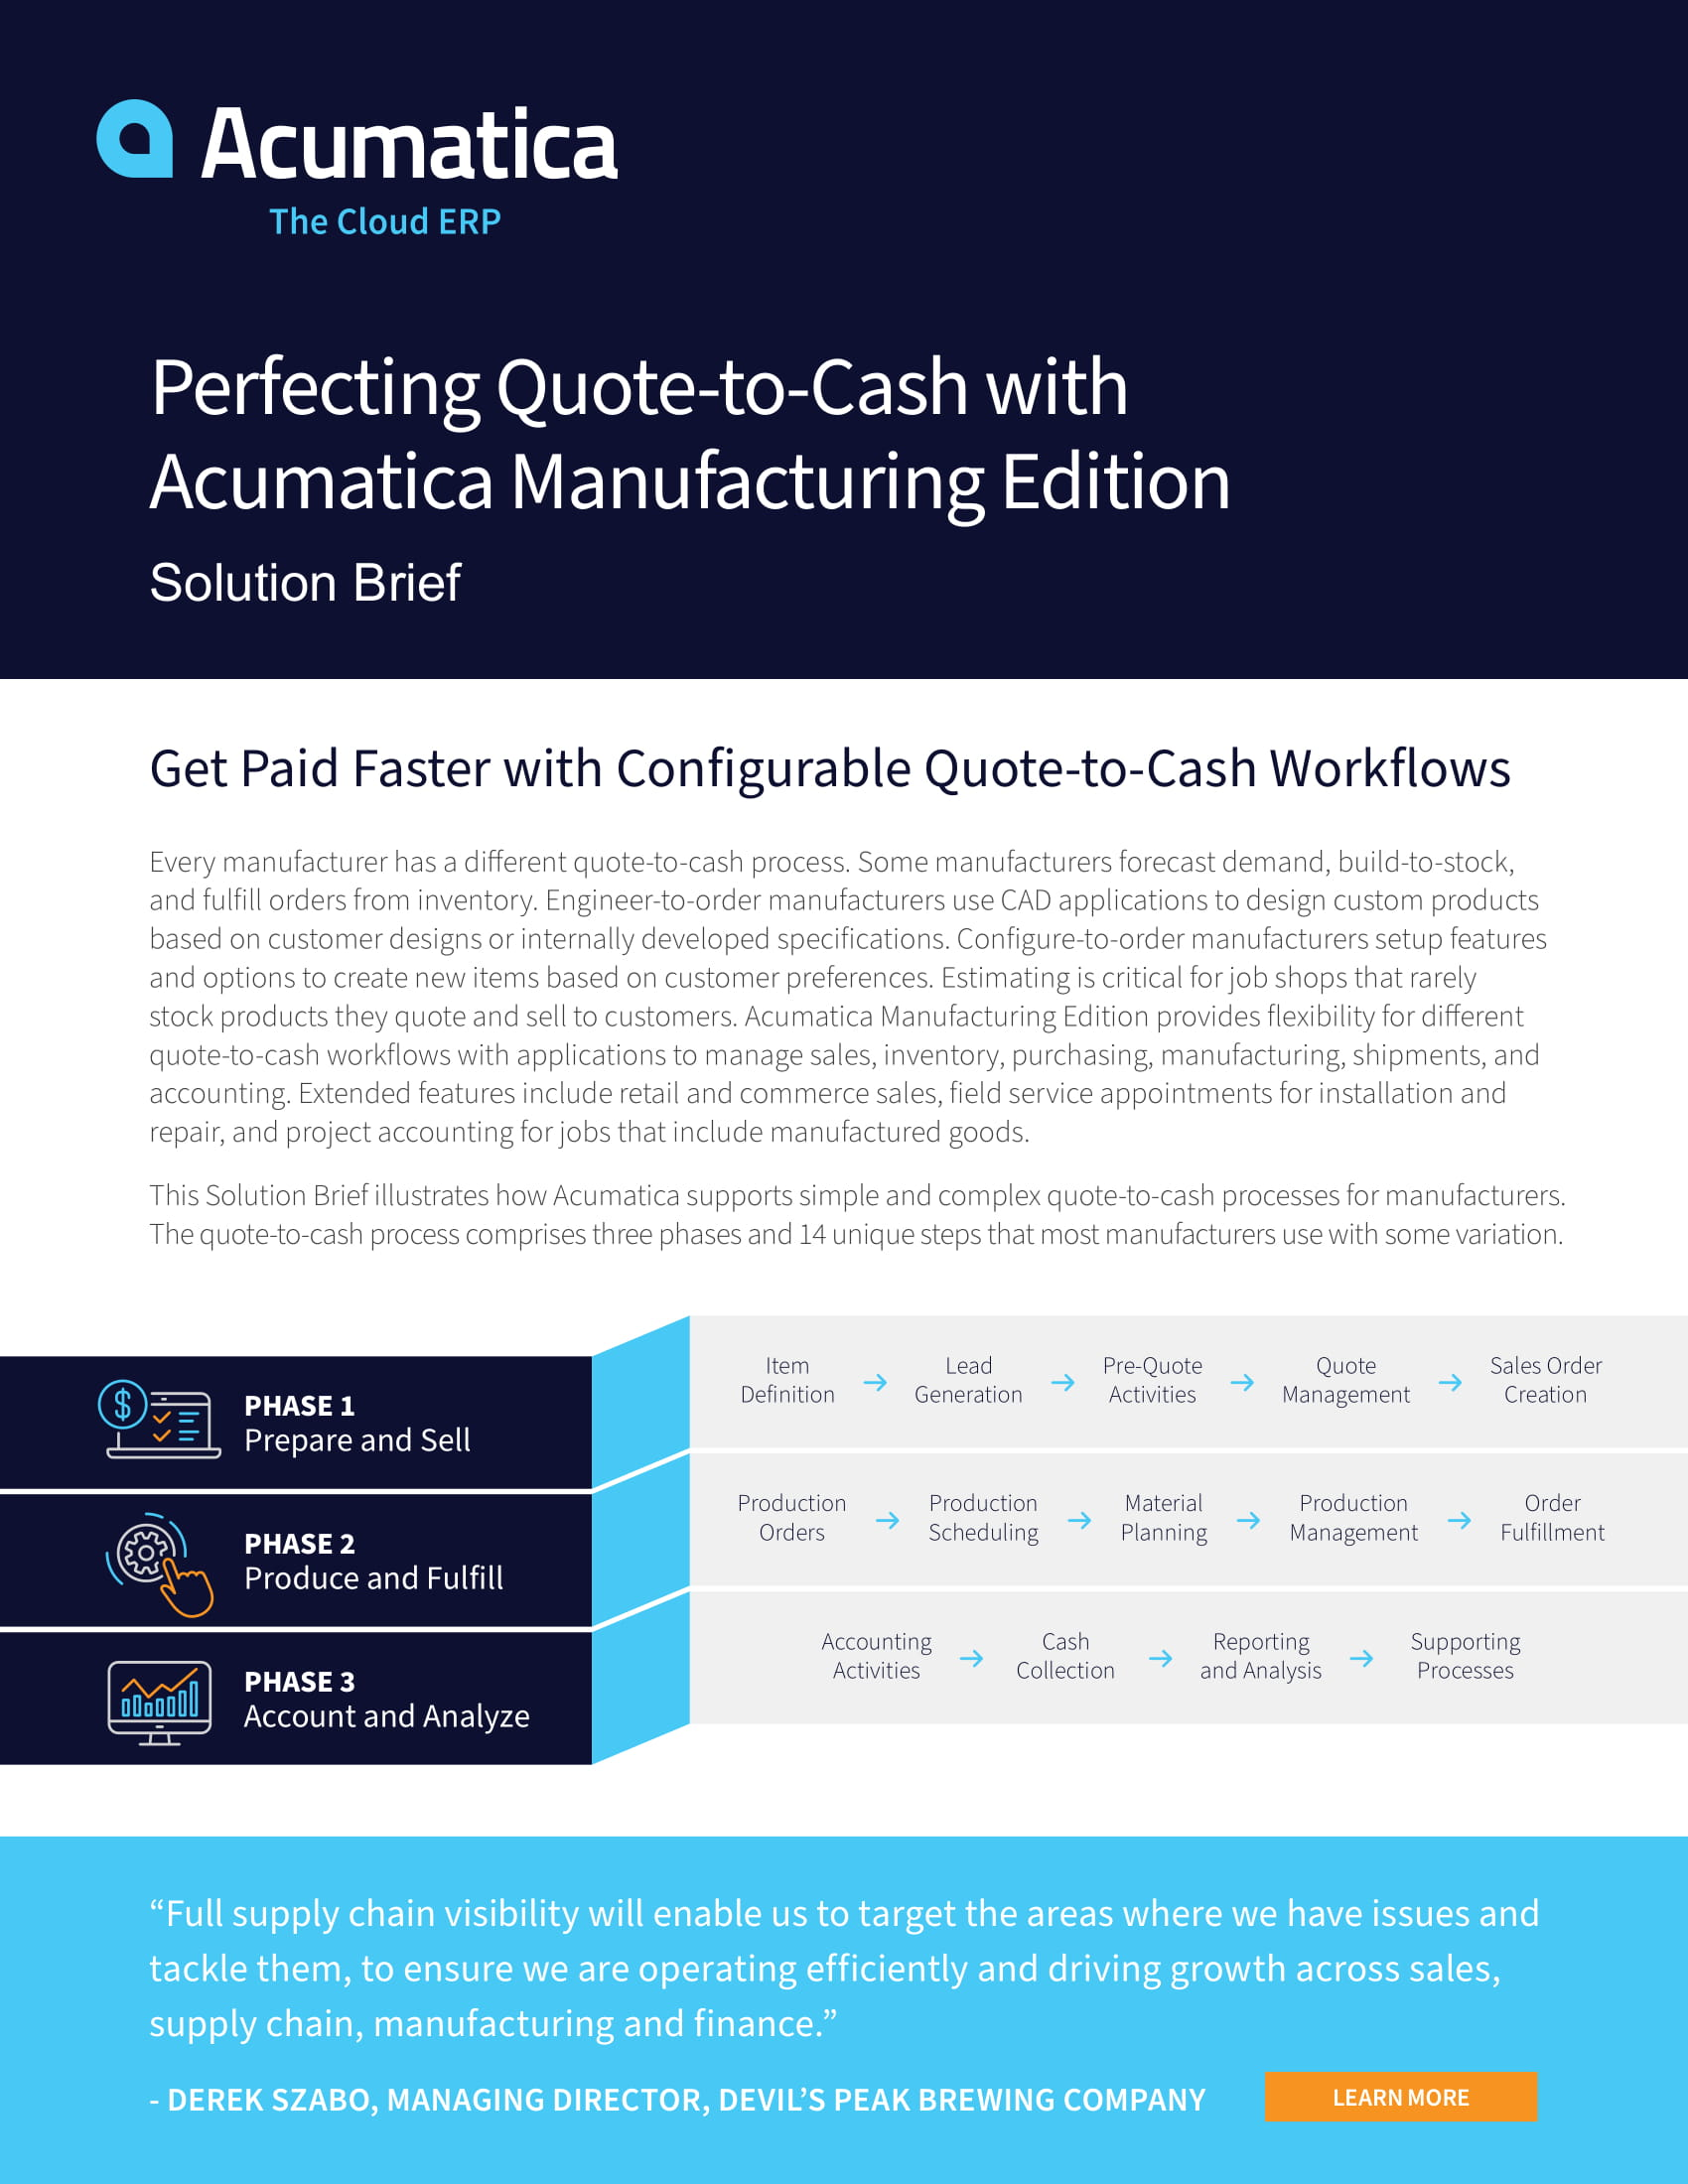 Solution Brief: Perfecting Quote-to-Cash with Acumatica Manufacturing Edition